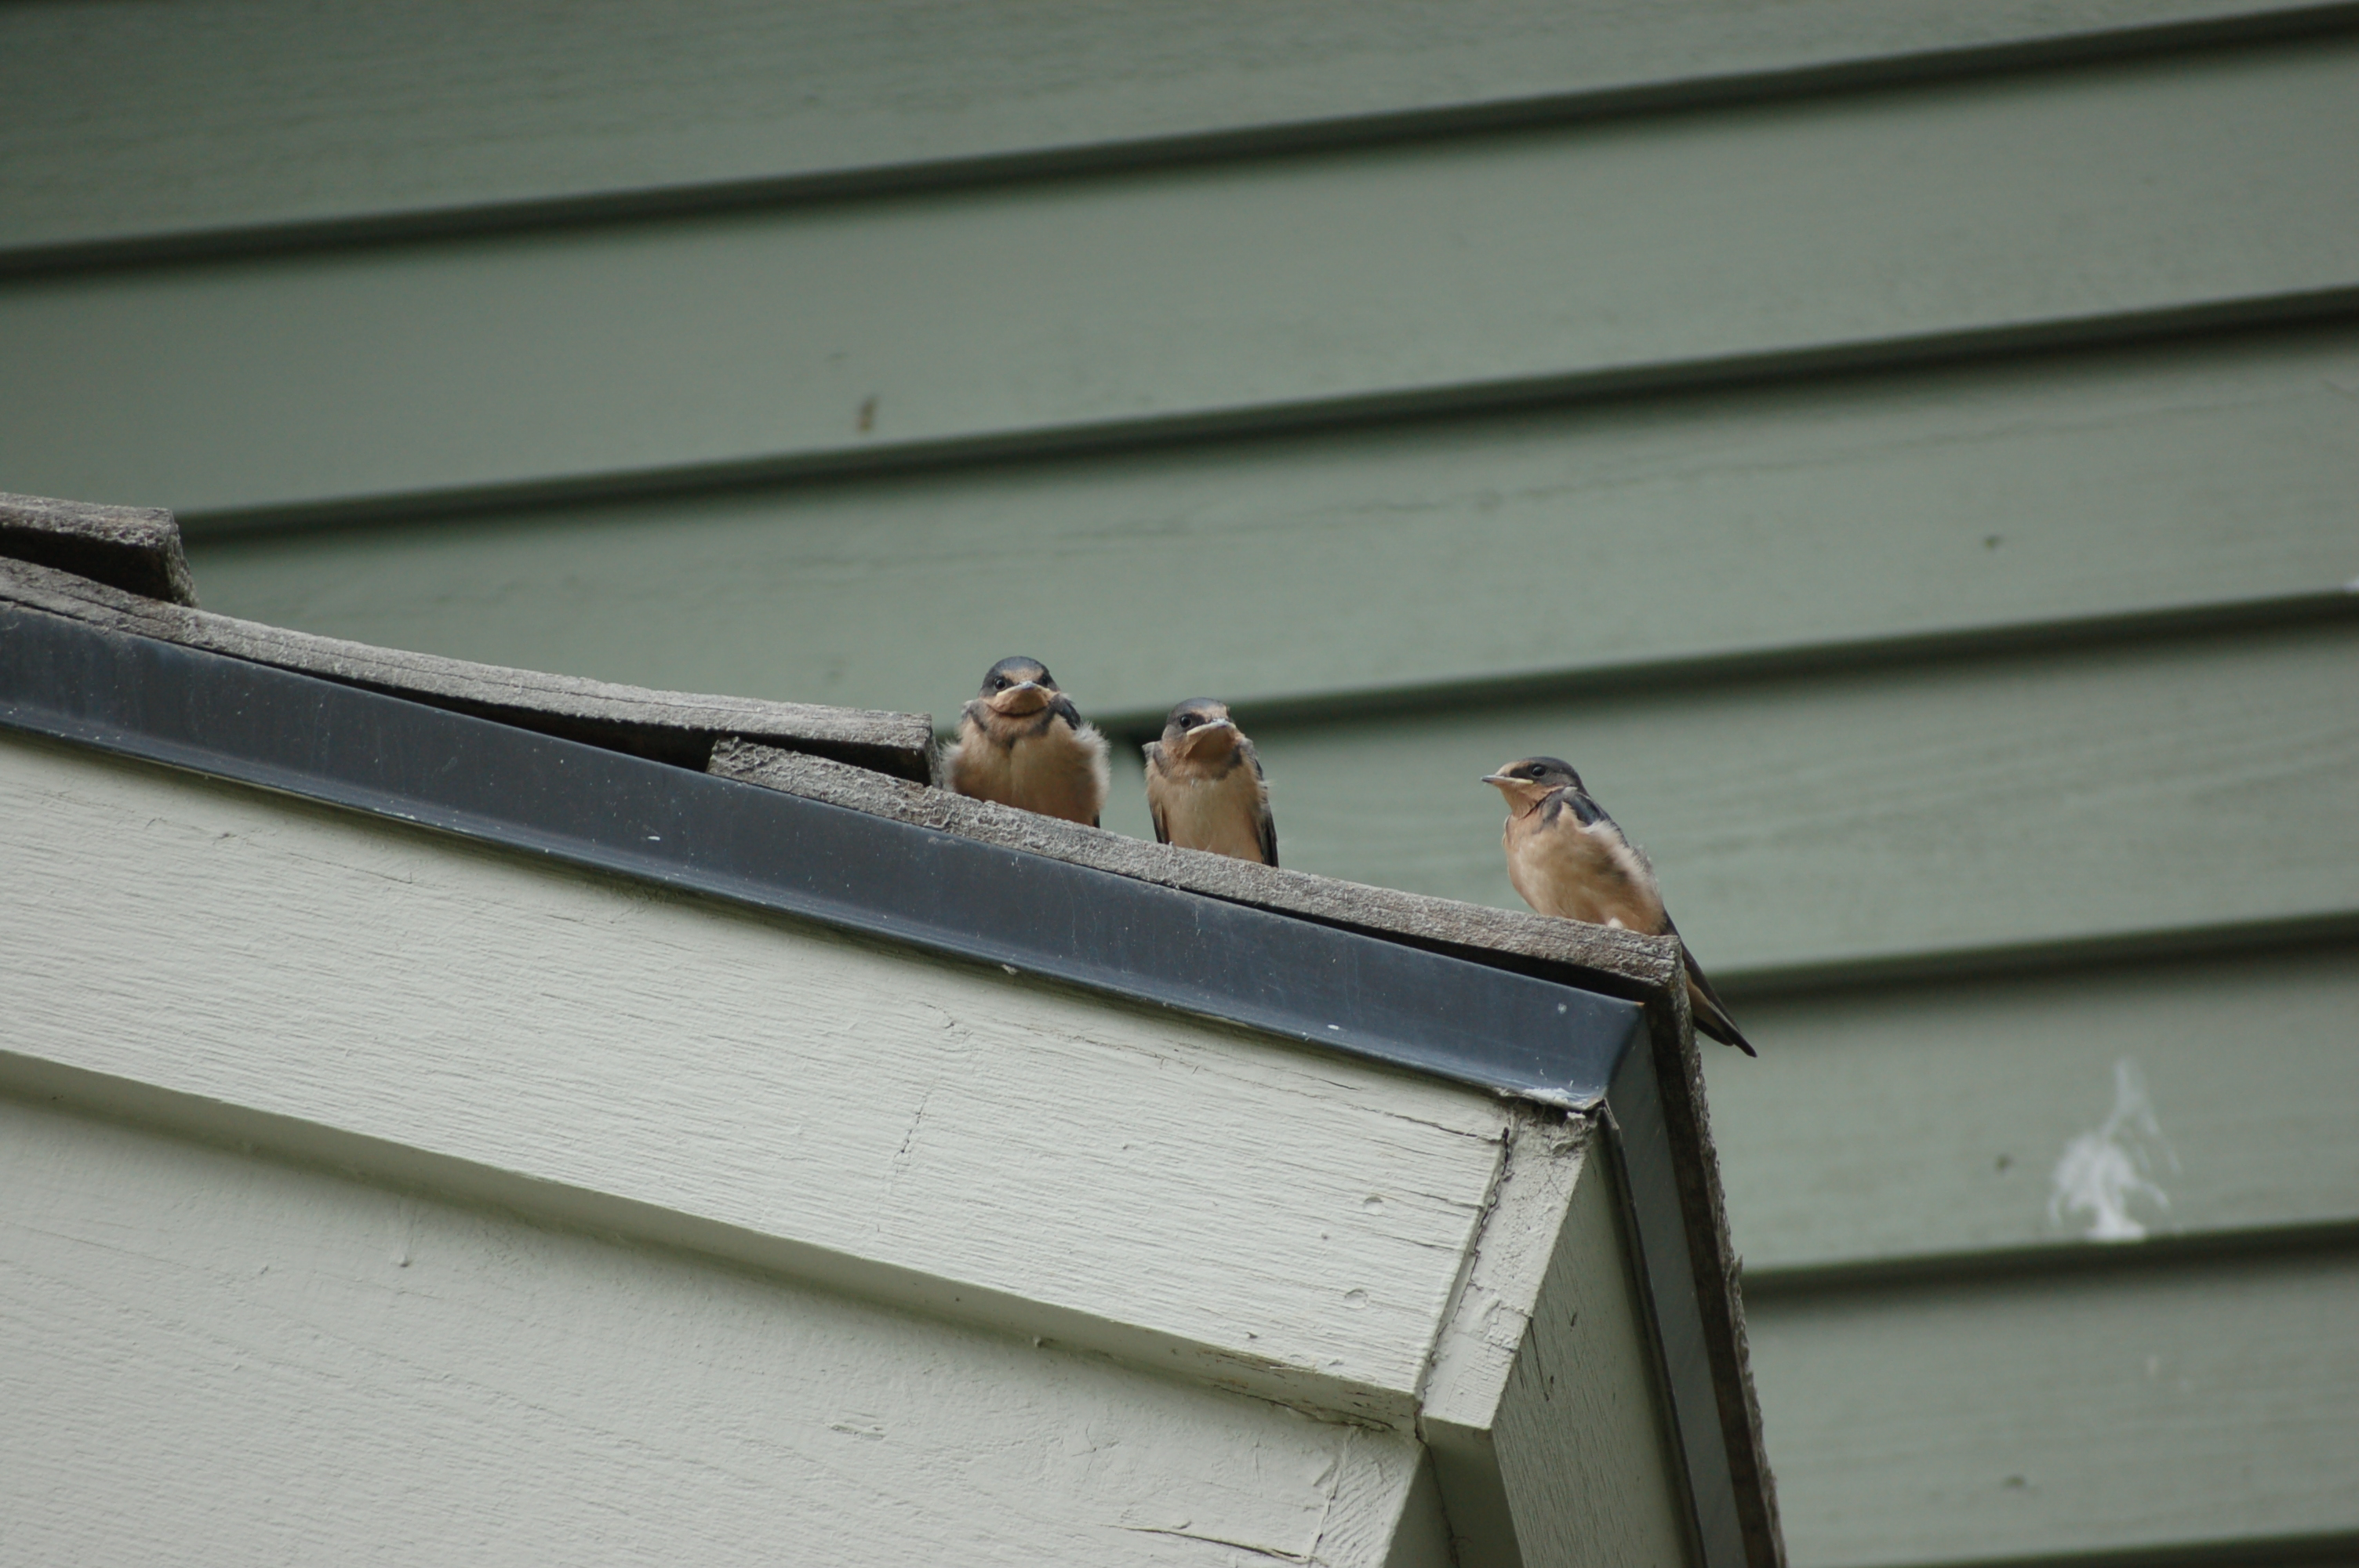 Three swallow fledglings that just left their nest sit together on a roof with a parent swallow watching nearby. The parent stays close to ensure that the fledglings are learning how to fly and feed themselves. (Photo by C.J.Johnson)